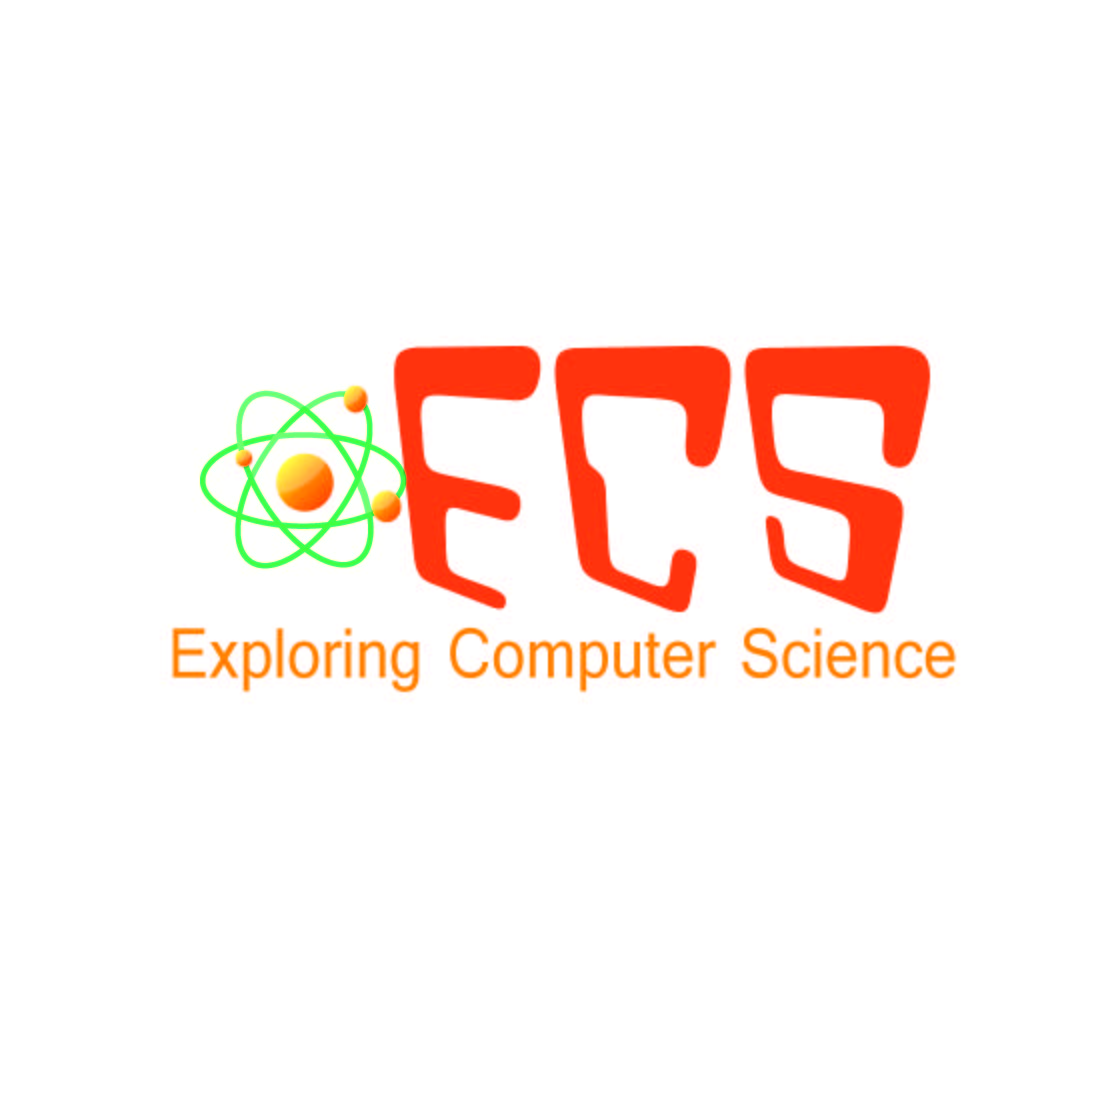 Logo Design by Saunter - Entry No. 86 in the Logo Design Contest ECS - Exploring Computer Science.